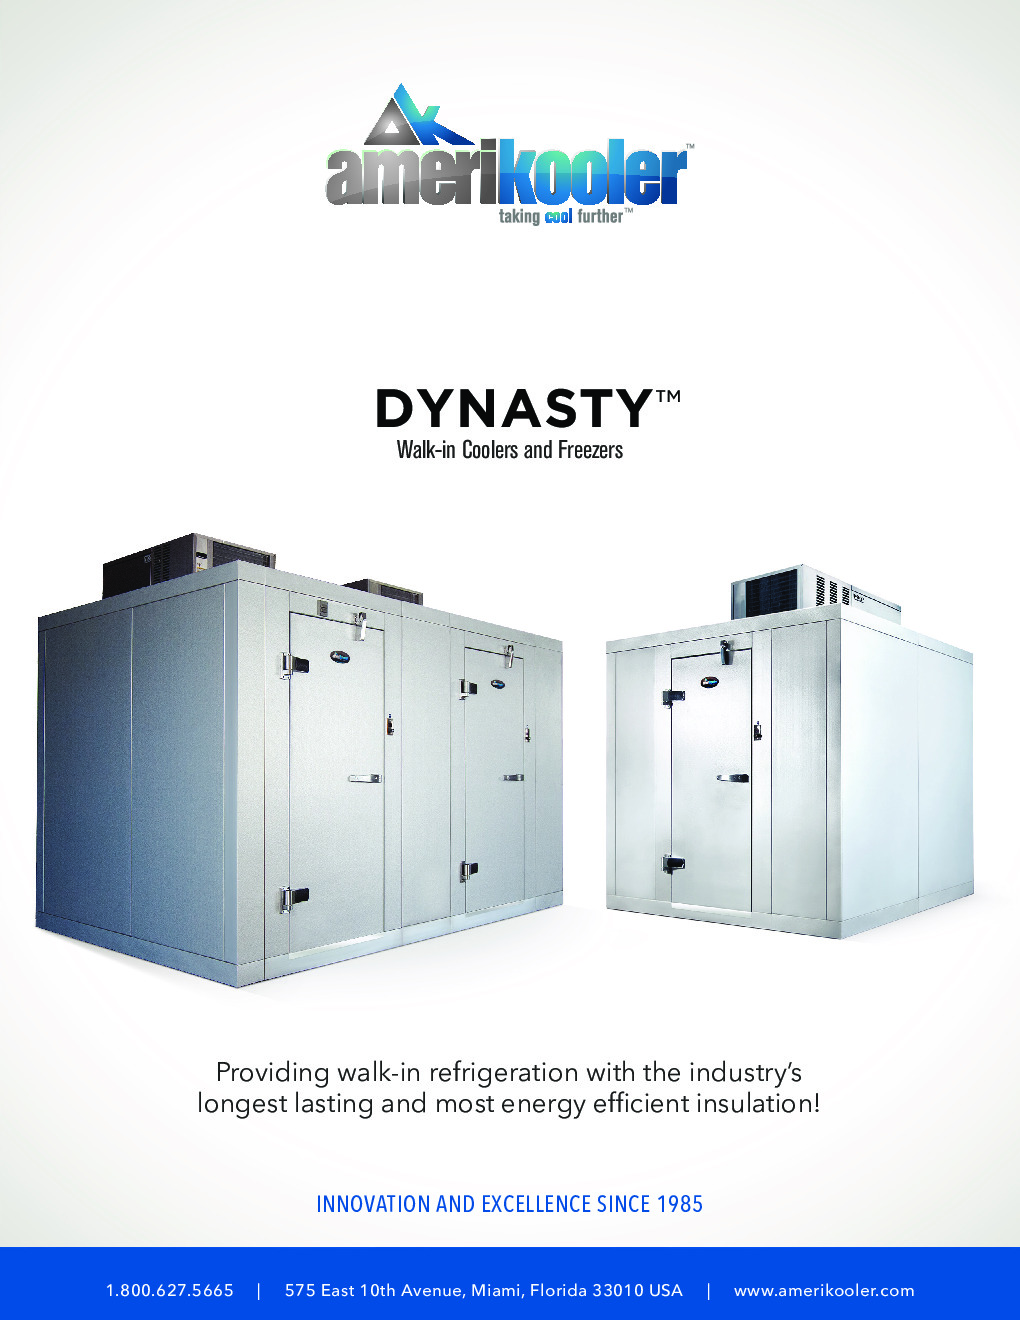 AmeriKooler DW101277F-6/6-SC 10' X 12' Walk-In Cooler, 6' L Cooler with Floor and 6' L Freezer, Self Contained